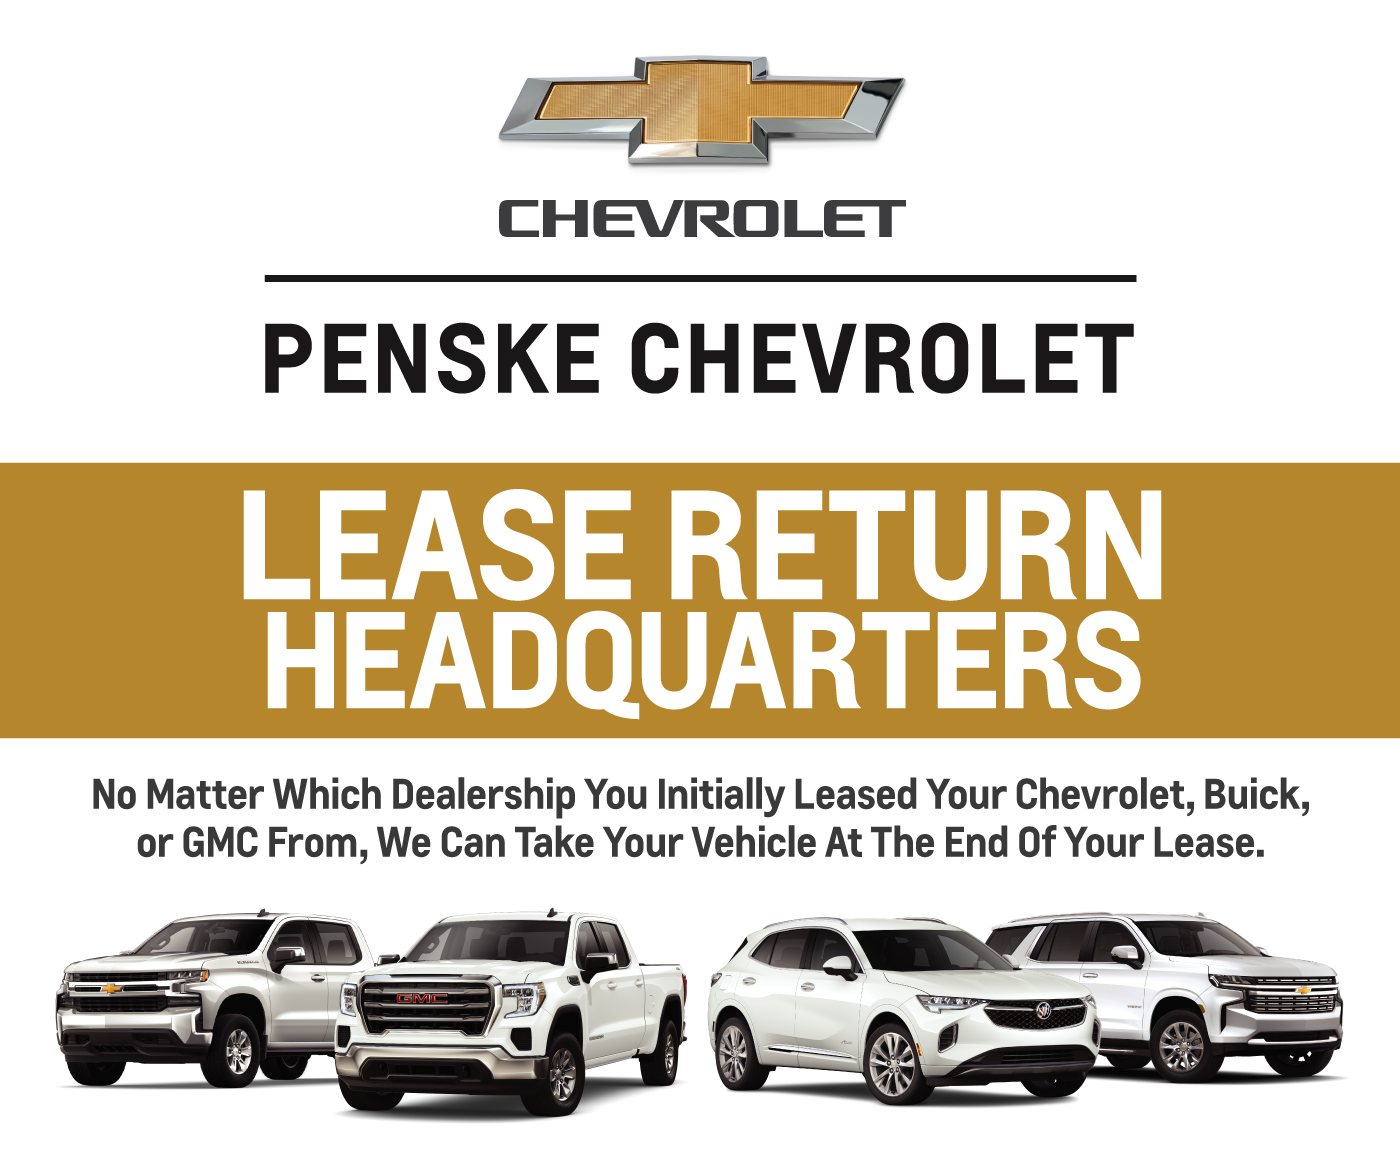 Penske Chevrolet is Your Lease Return Headquarters | No Matter Which Dealership You Initially Leased Your Chevy, Buick or GMC From, We Can Take Your Vehicle Back